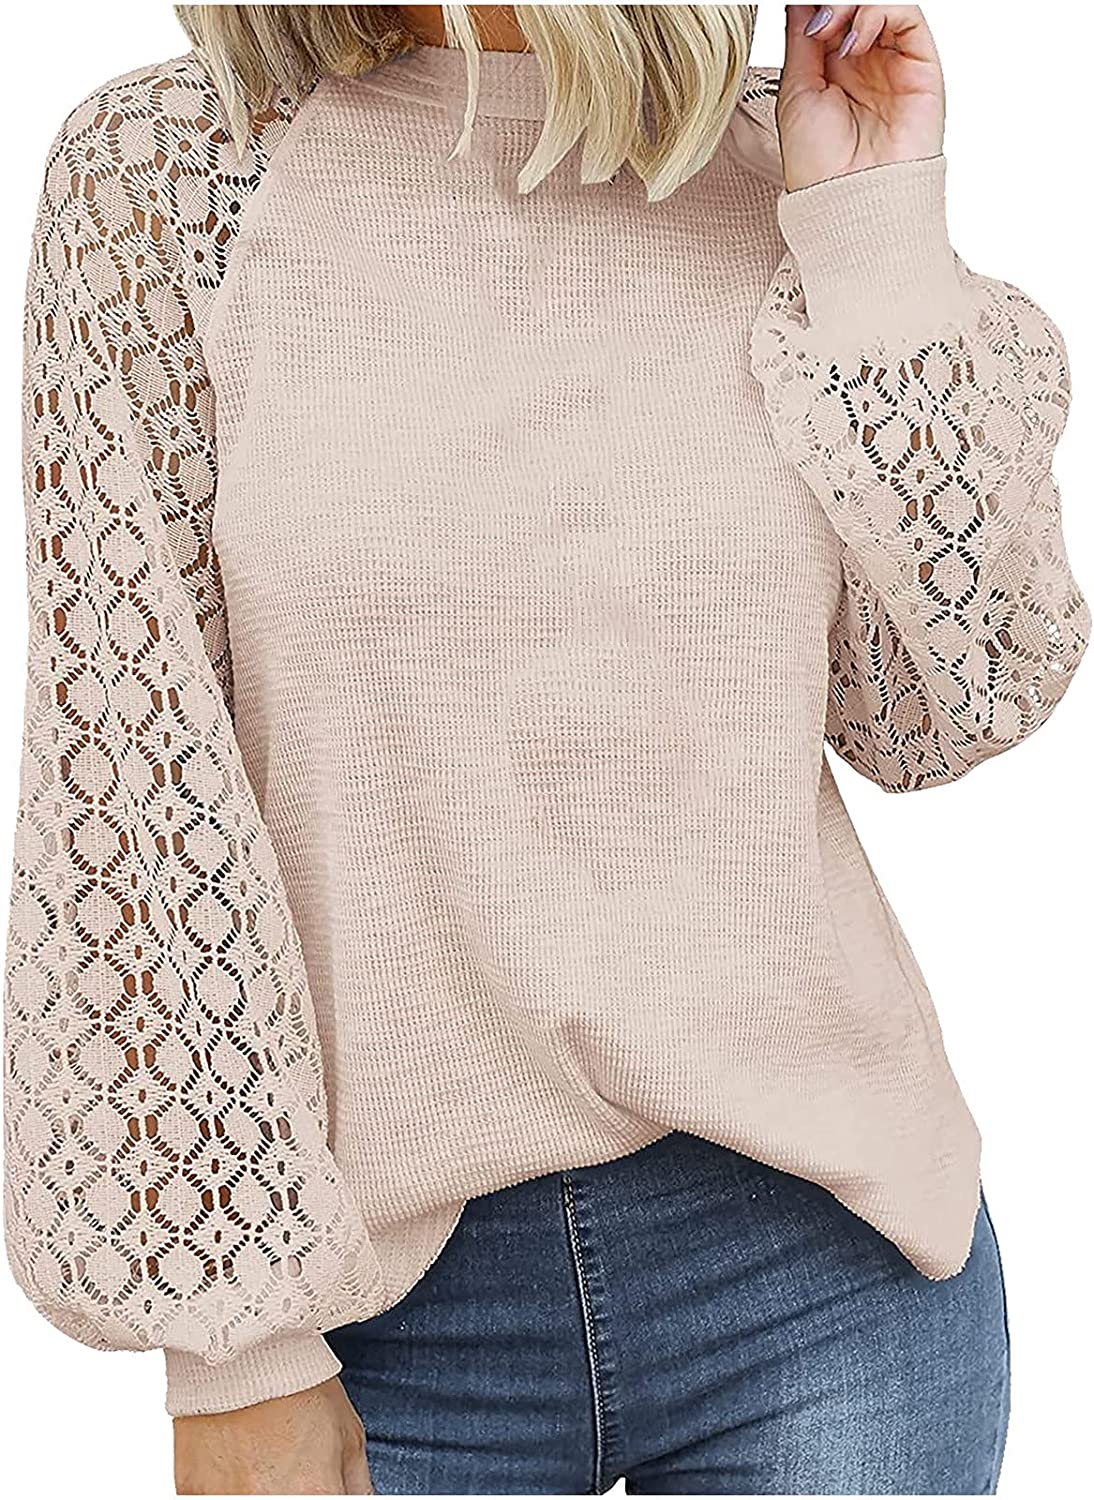 Women Summer Tops Women's O-Neck Long-Sleeved Lace Stitching Loose Tops Solid Sweatershirt